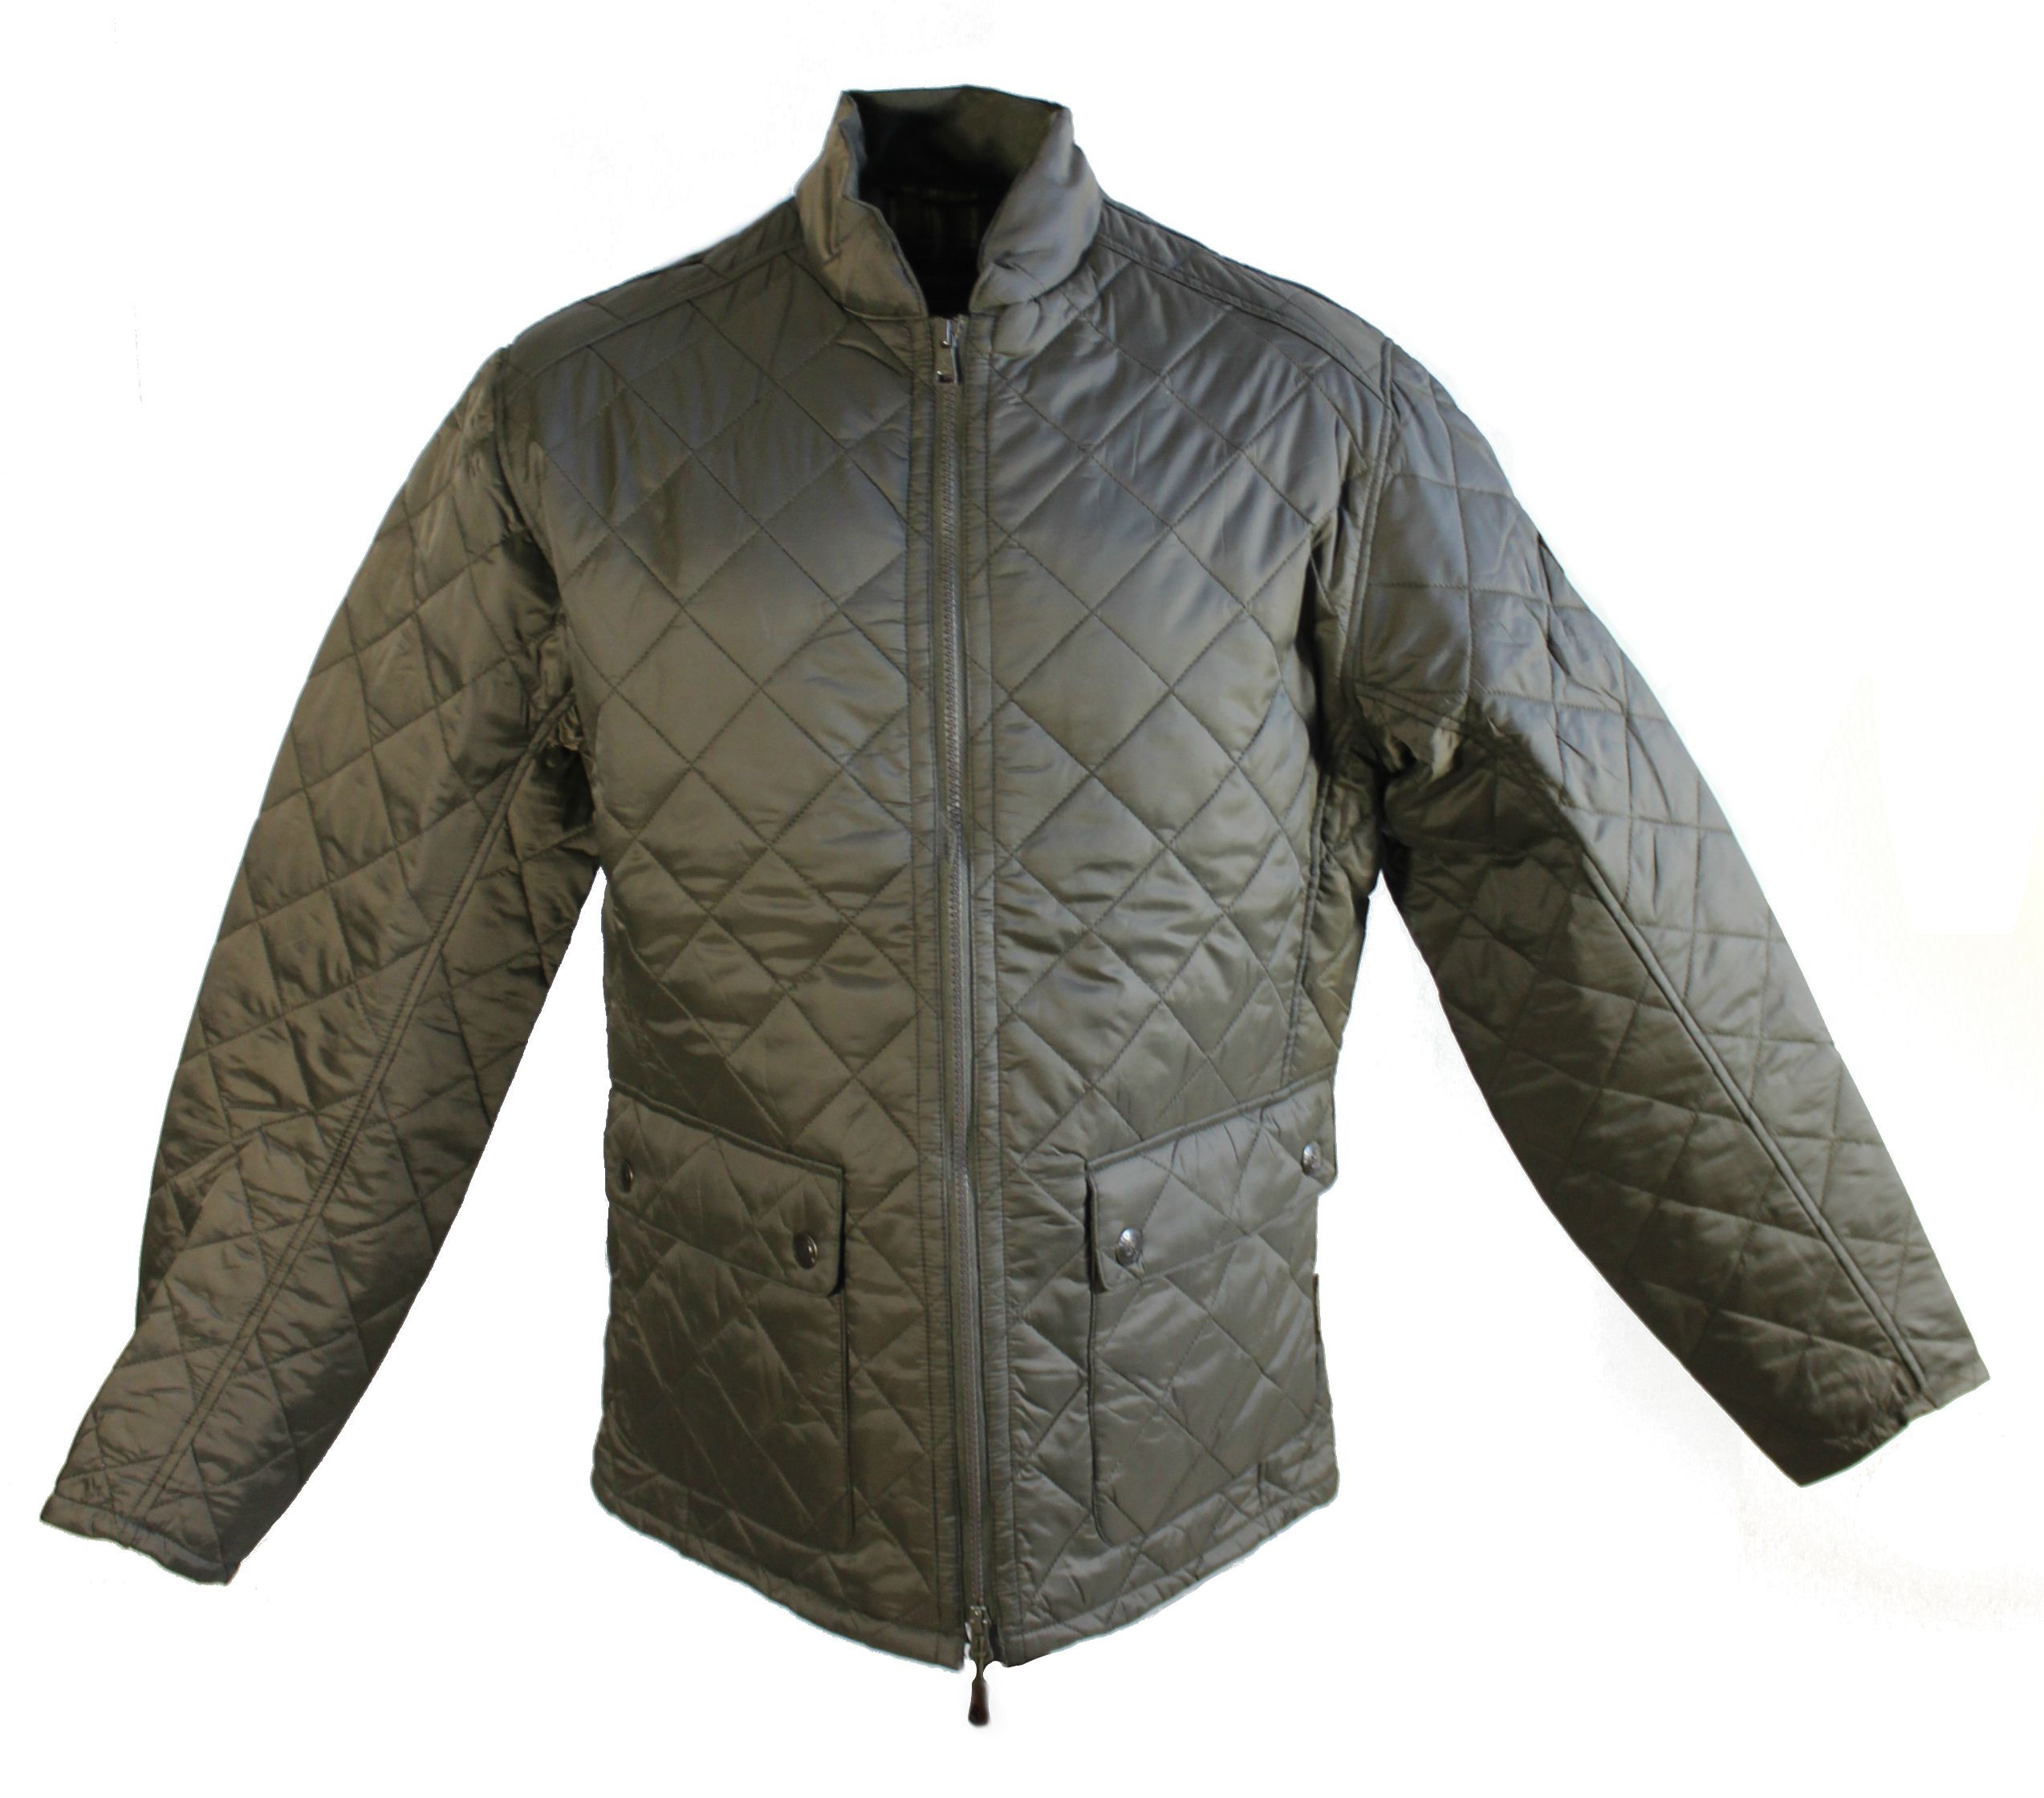 Куртка Remington Jaket Shaded olive, оливковый, р. M